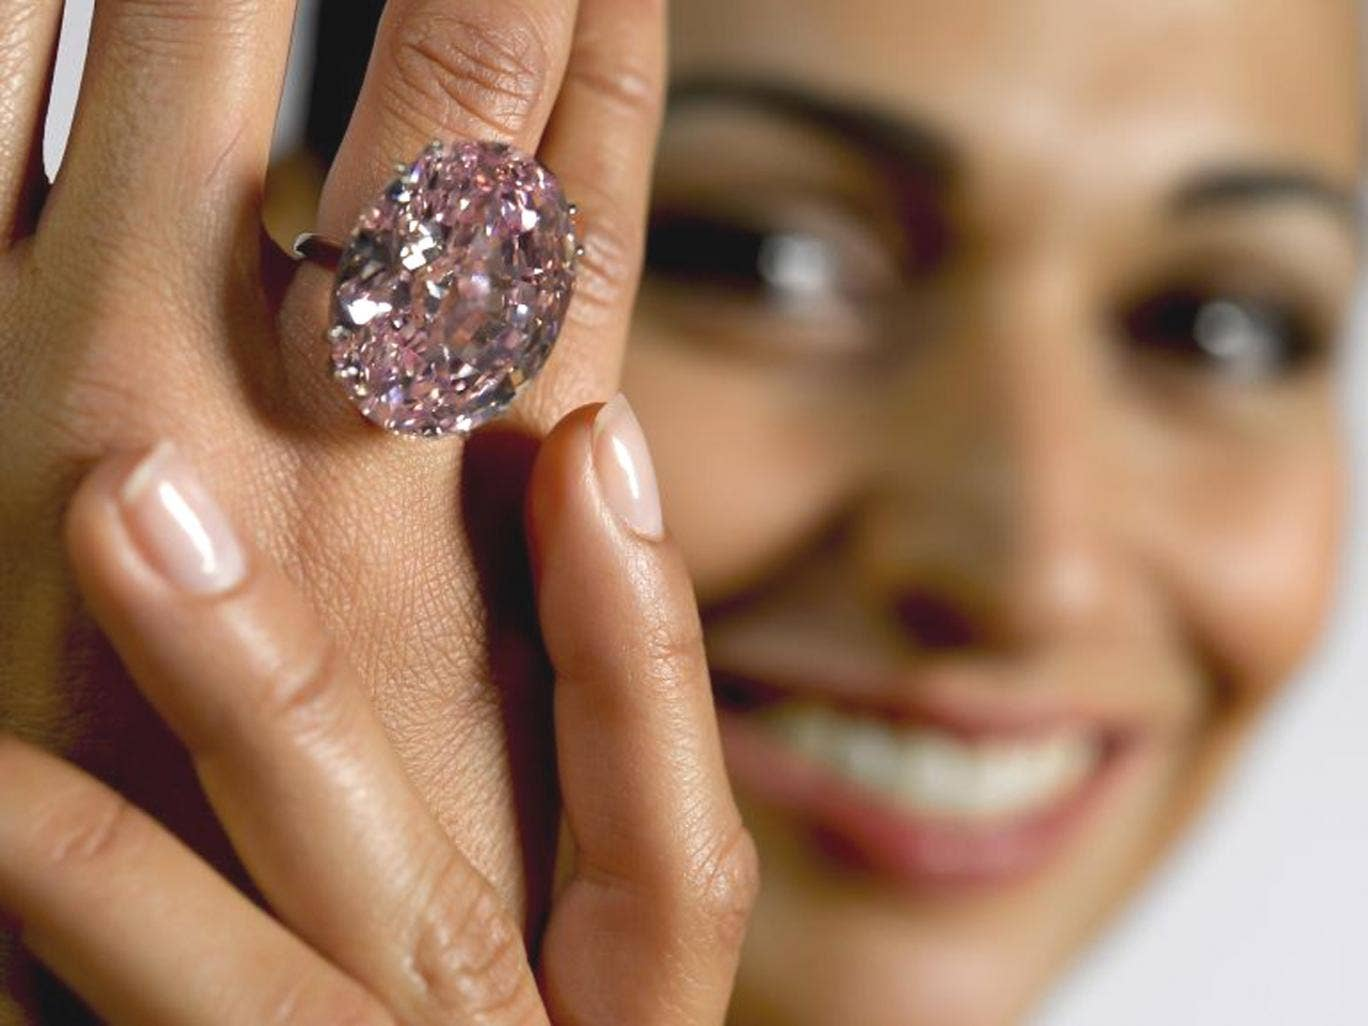 Oval-cut 59.6 carat jewel is the largest flawless or internally flawless, fancy vivid pink diamond that the Gemological Institute of America (GIA) has ever graded